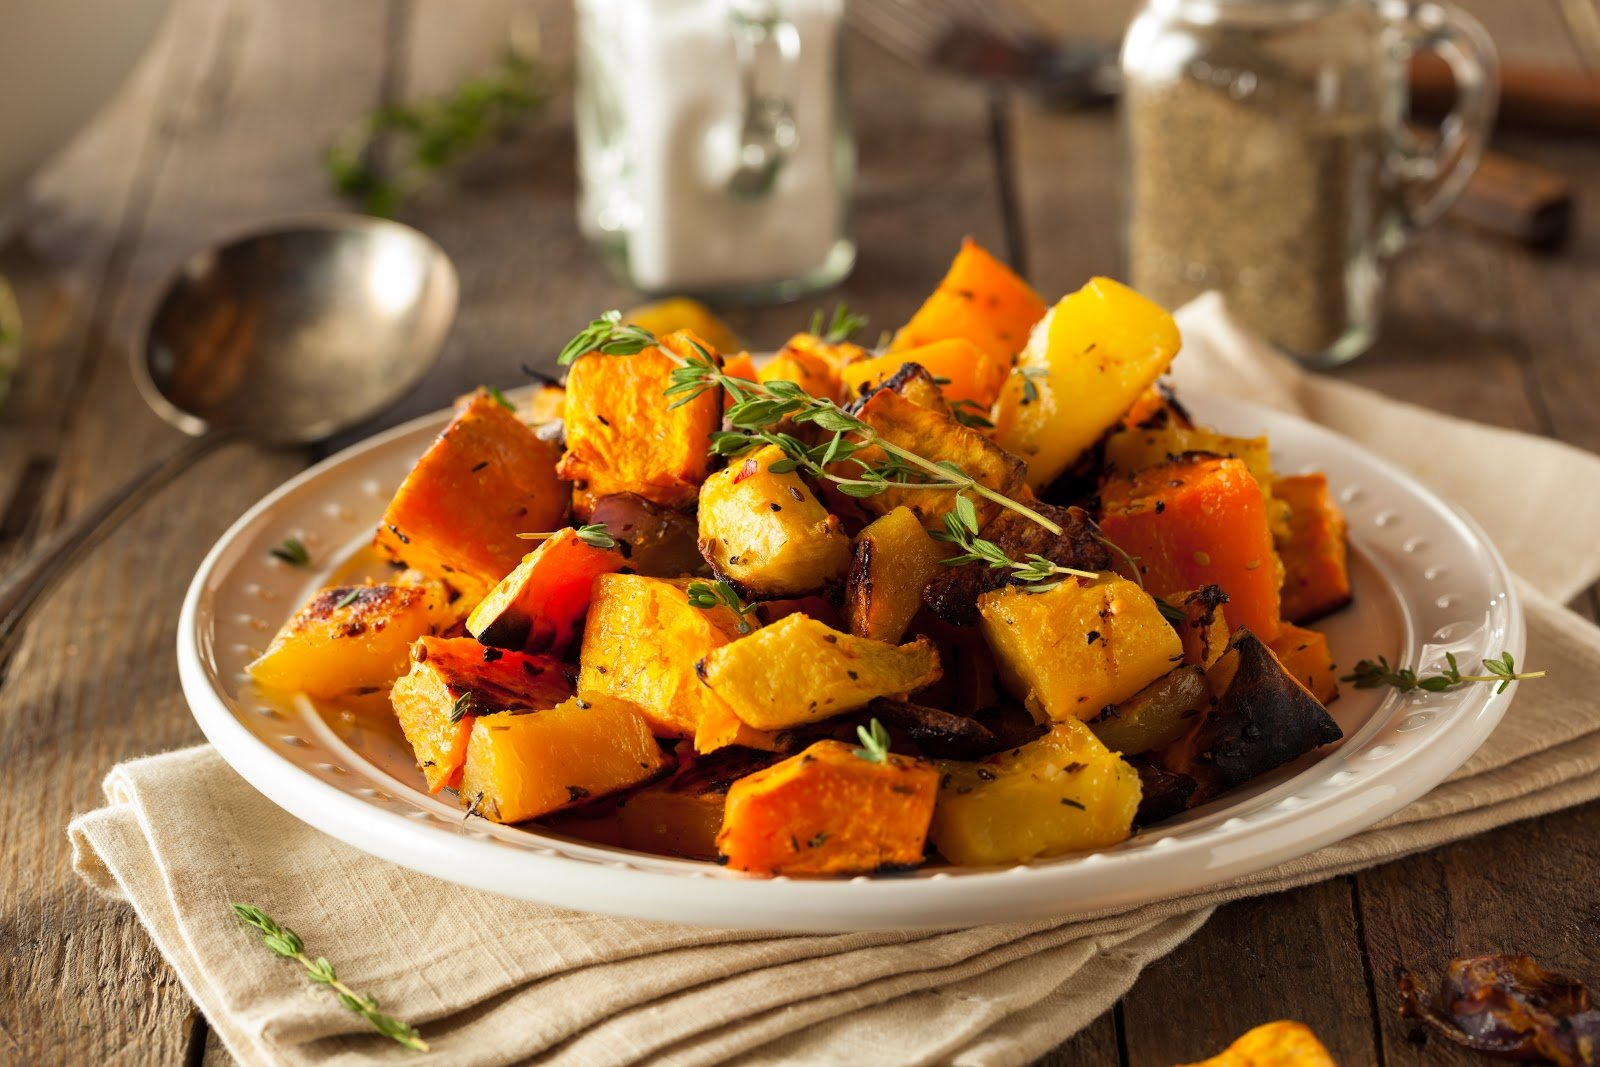 ibs diet: Homemade Roasted Root Vegetables in a plate